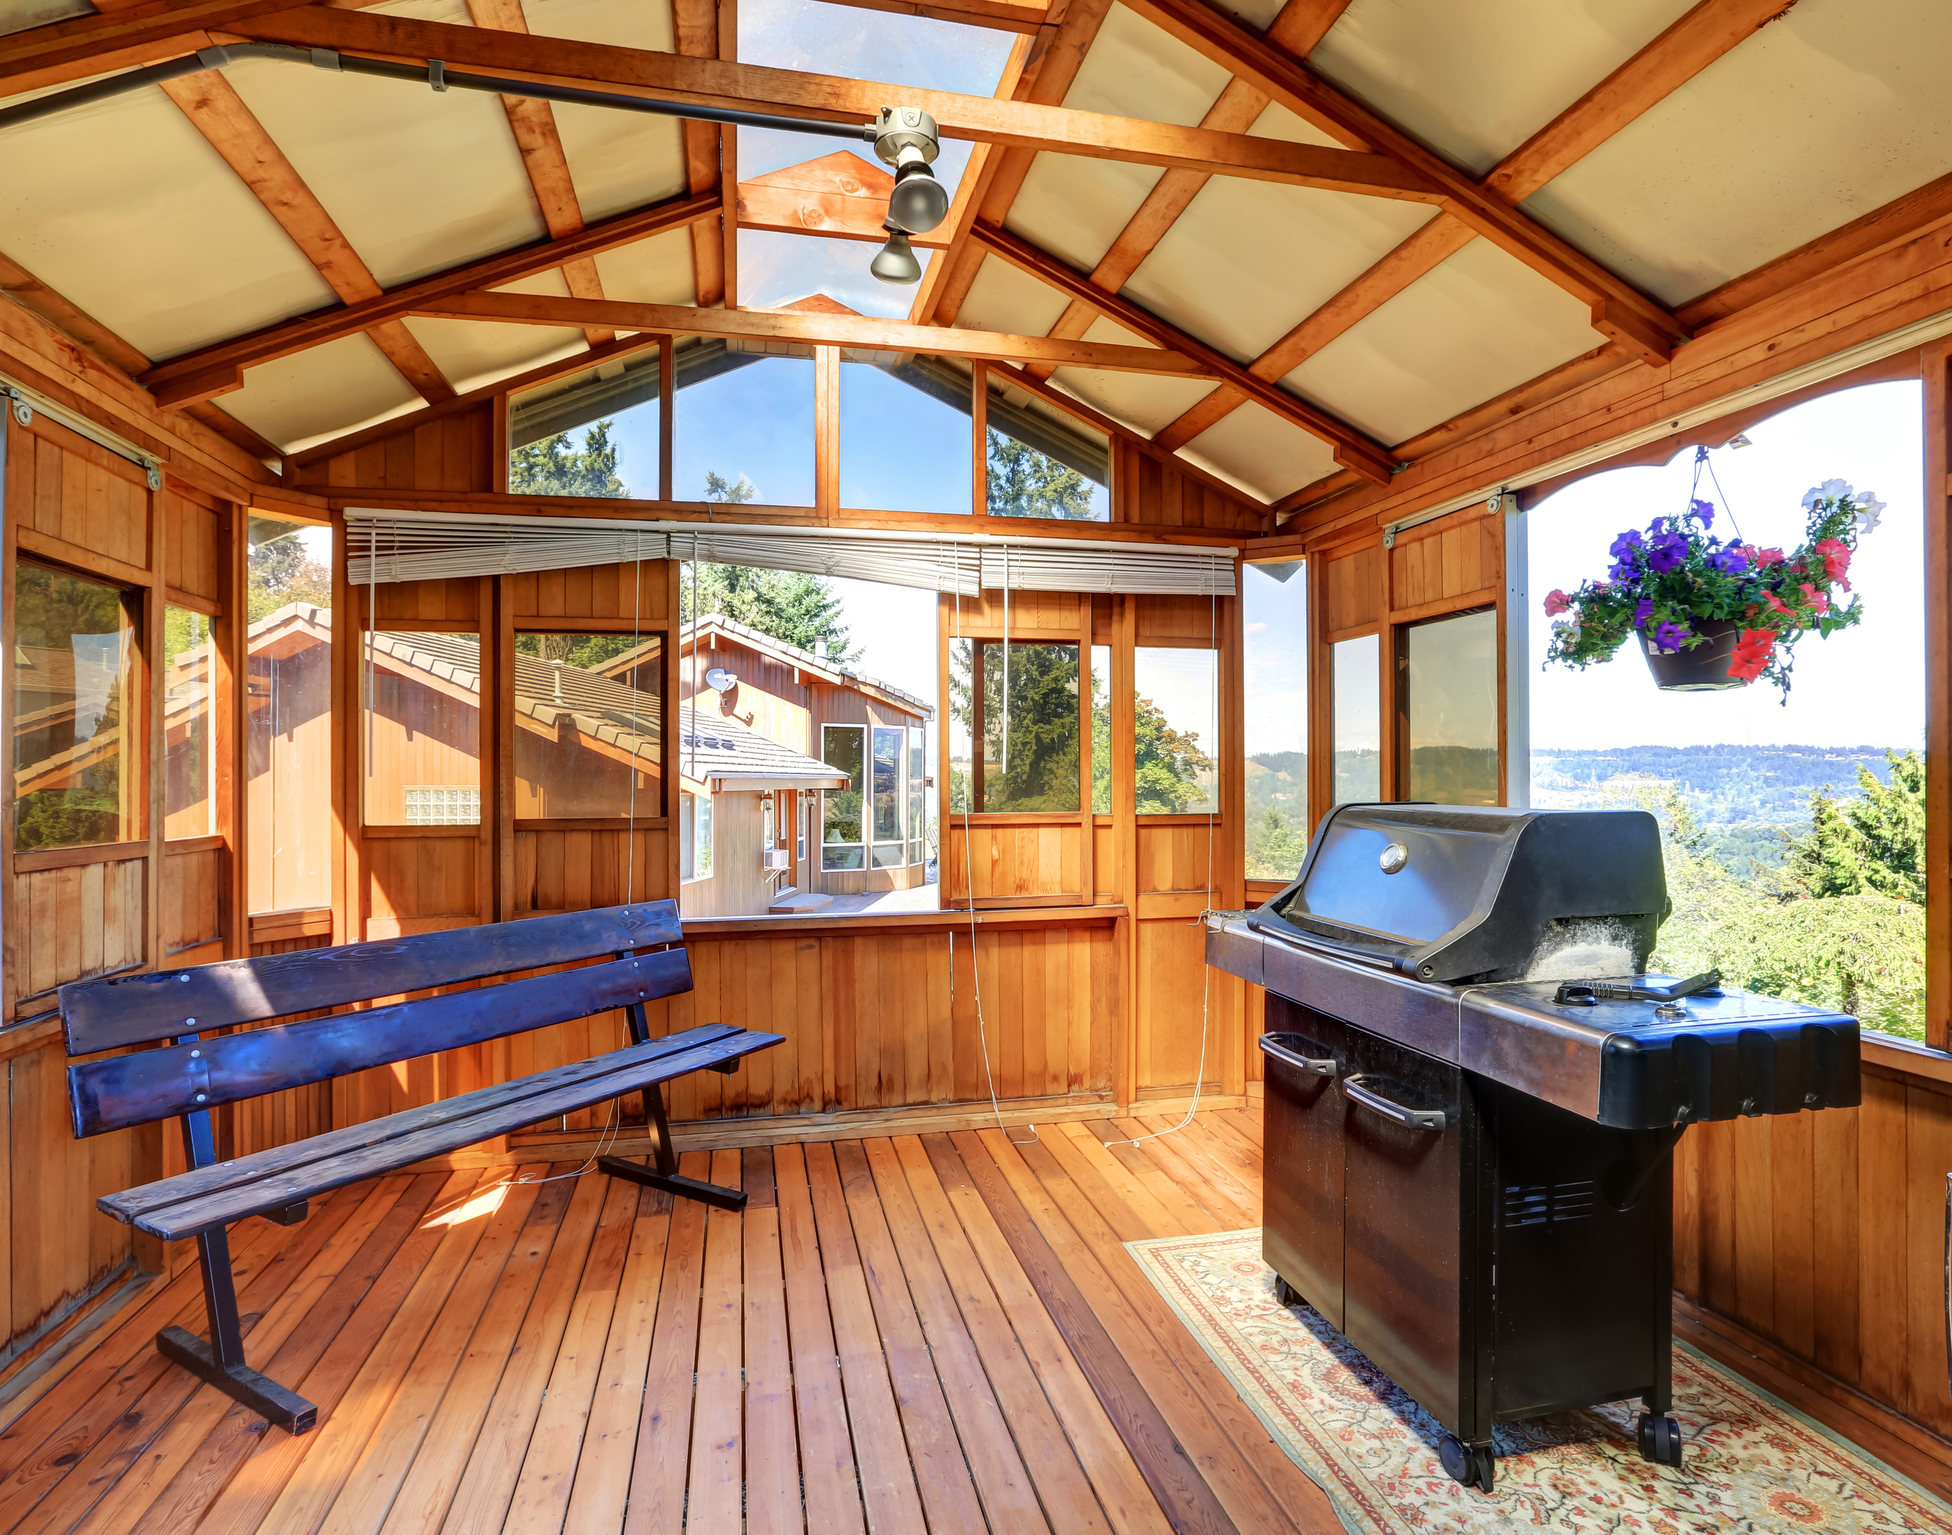 Wooden Barbecue shed with bench